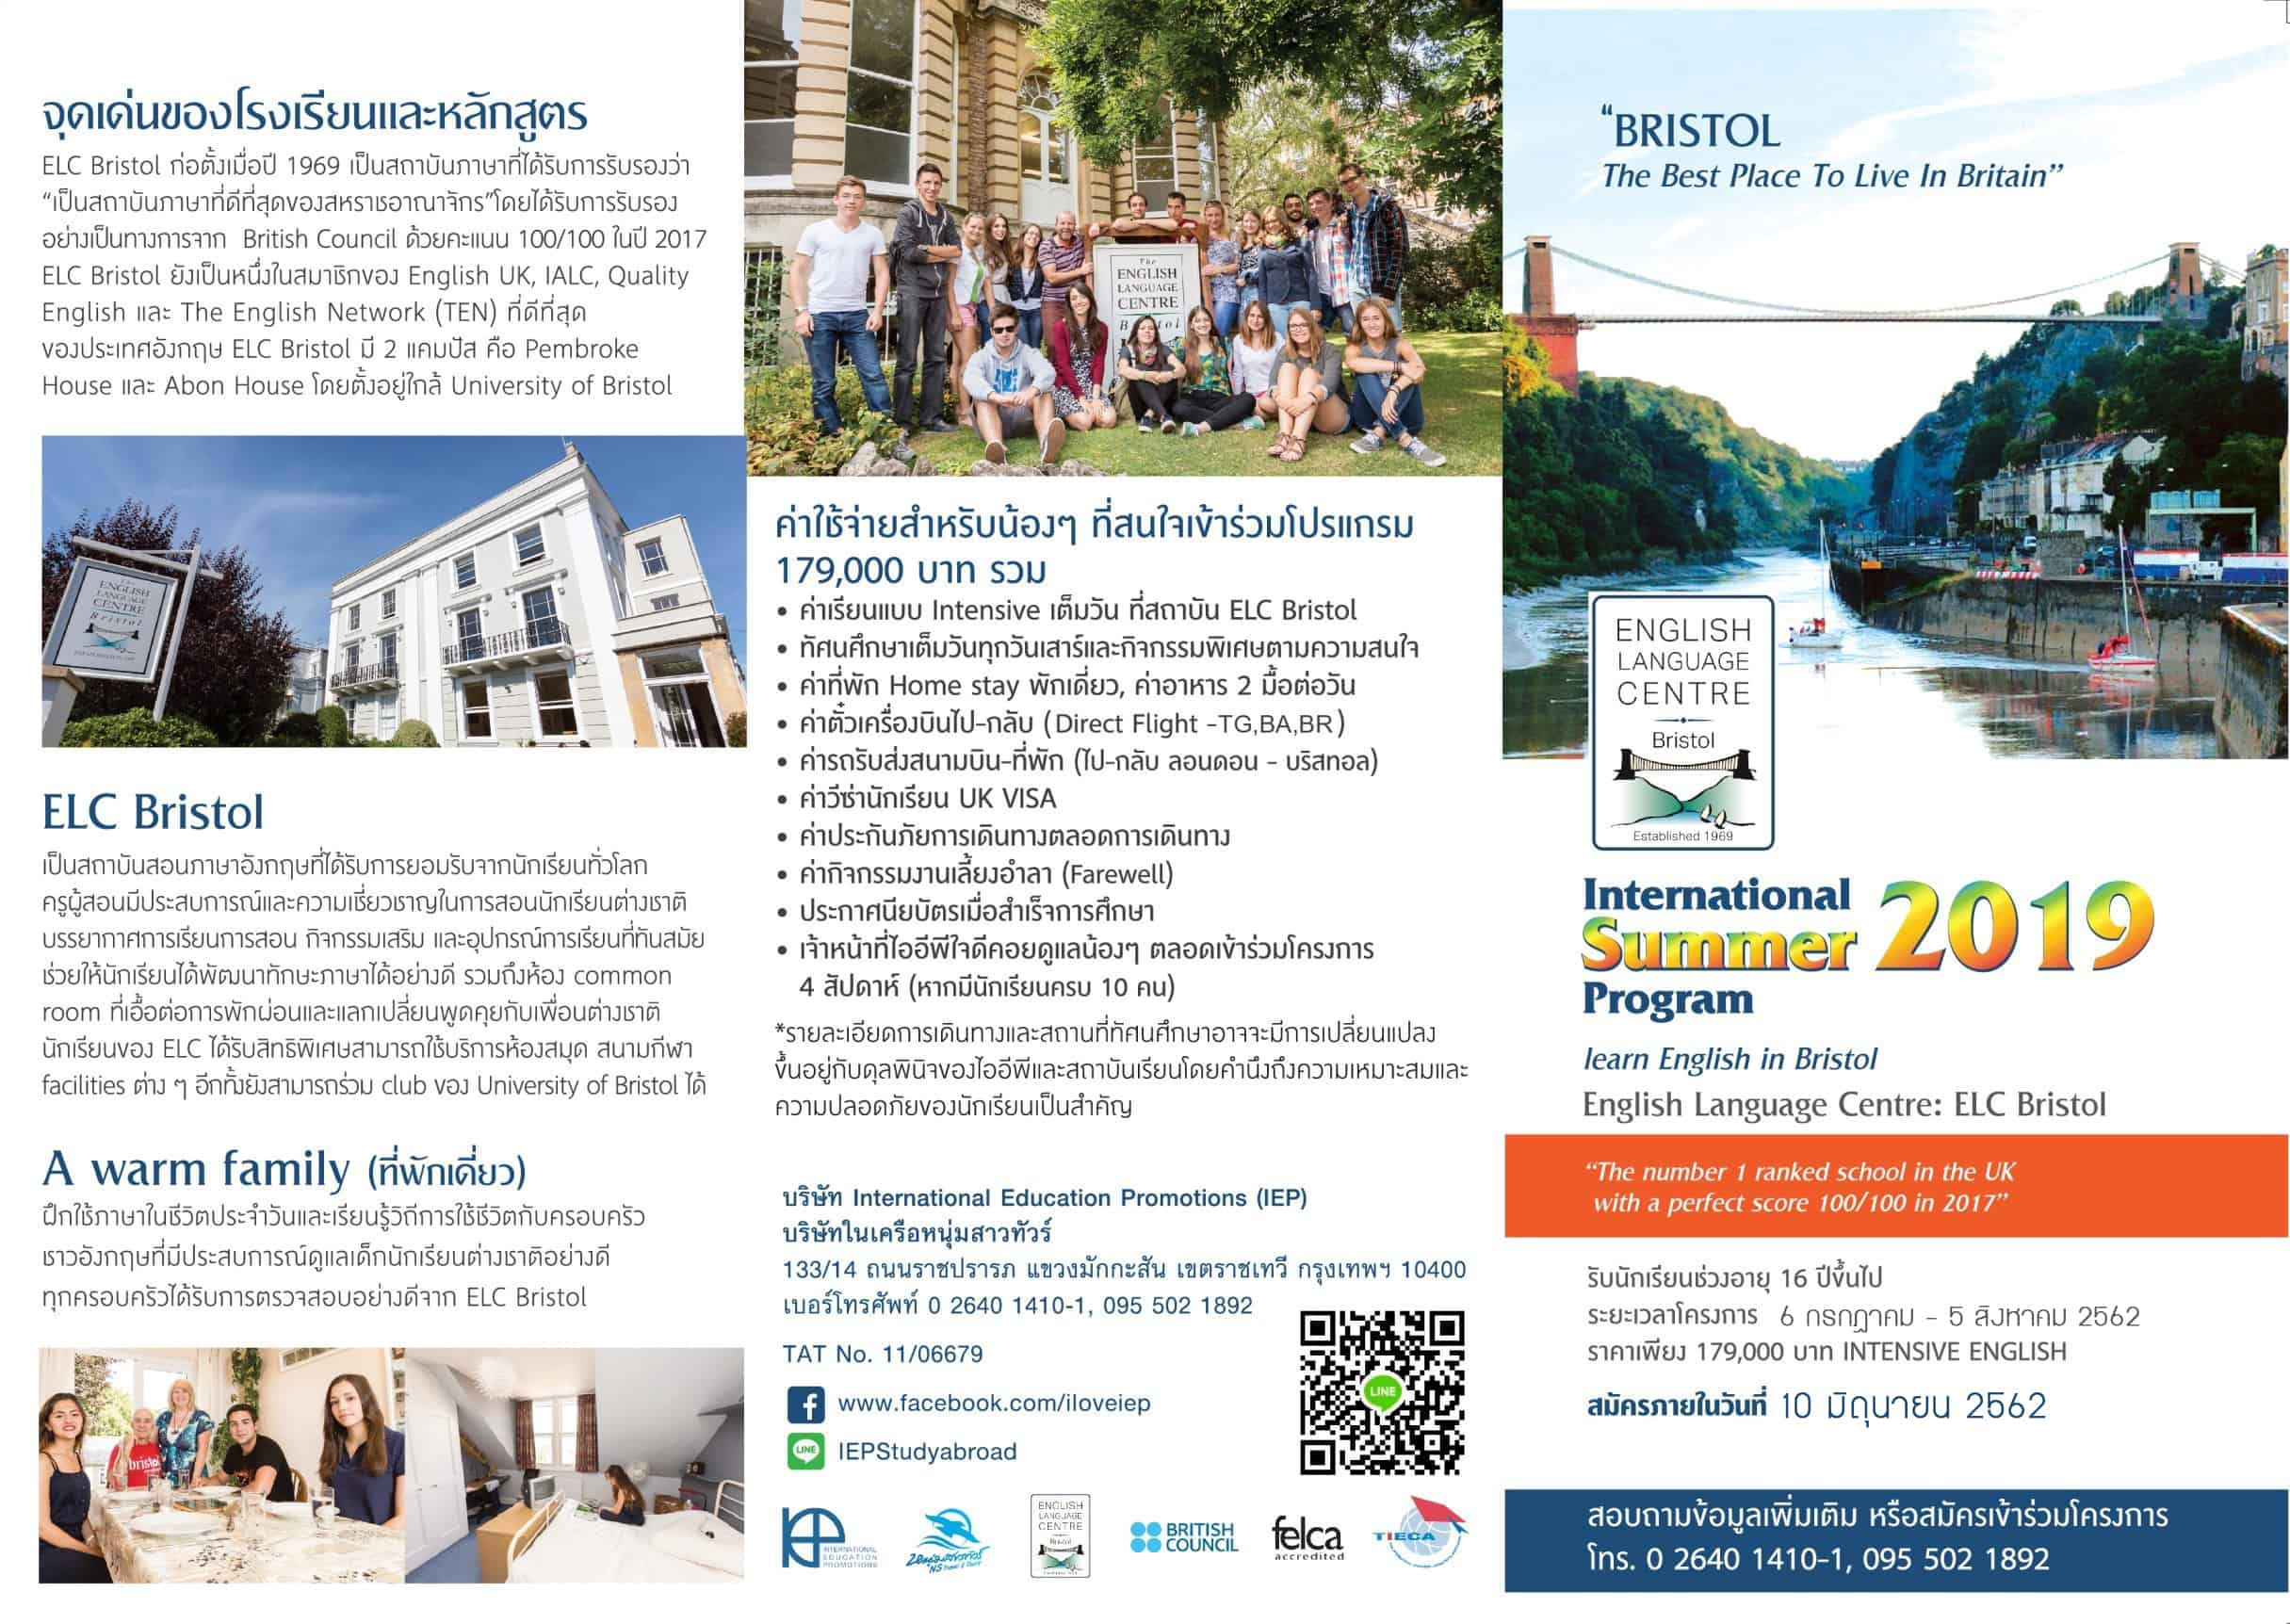 เรียนซัมเมอร์ต่างประเทศ English Language Centre-Program of ELC Bristol English Summer Camp April 2019 in UK